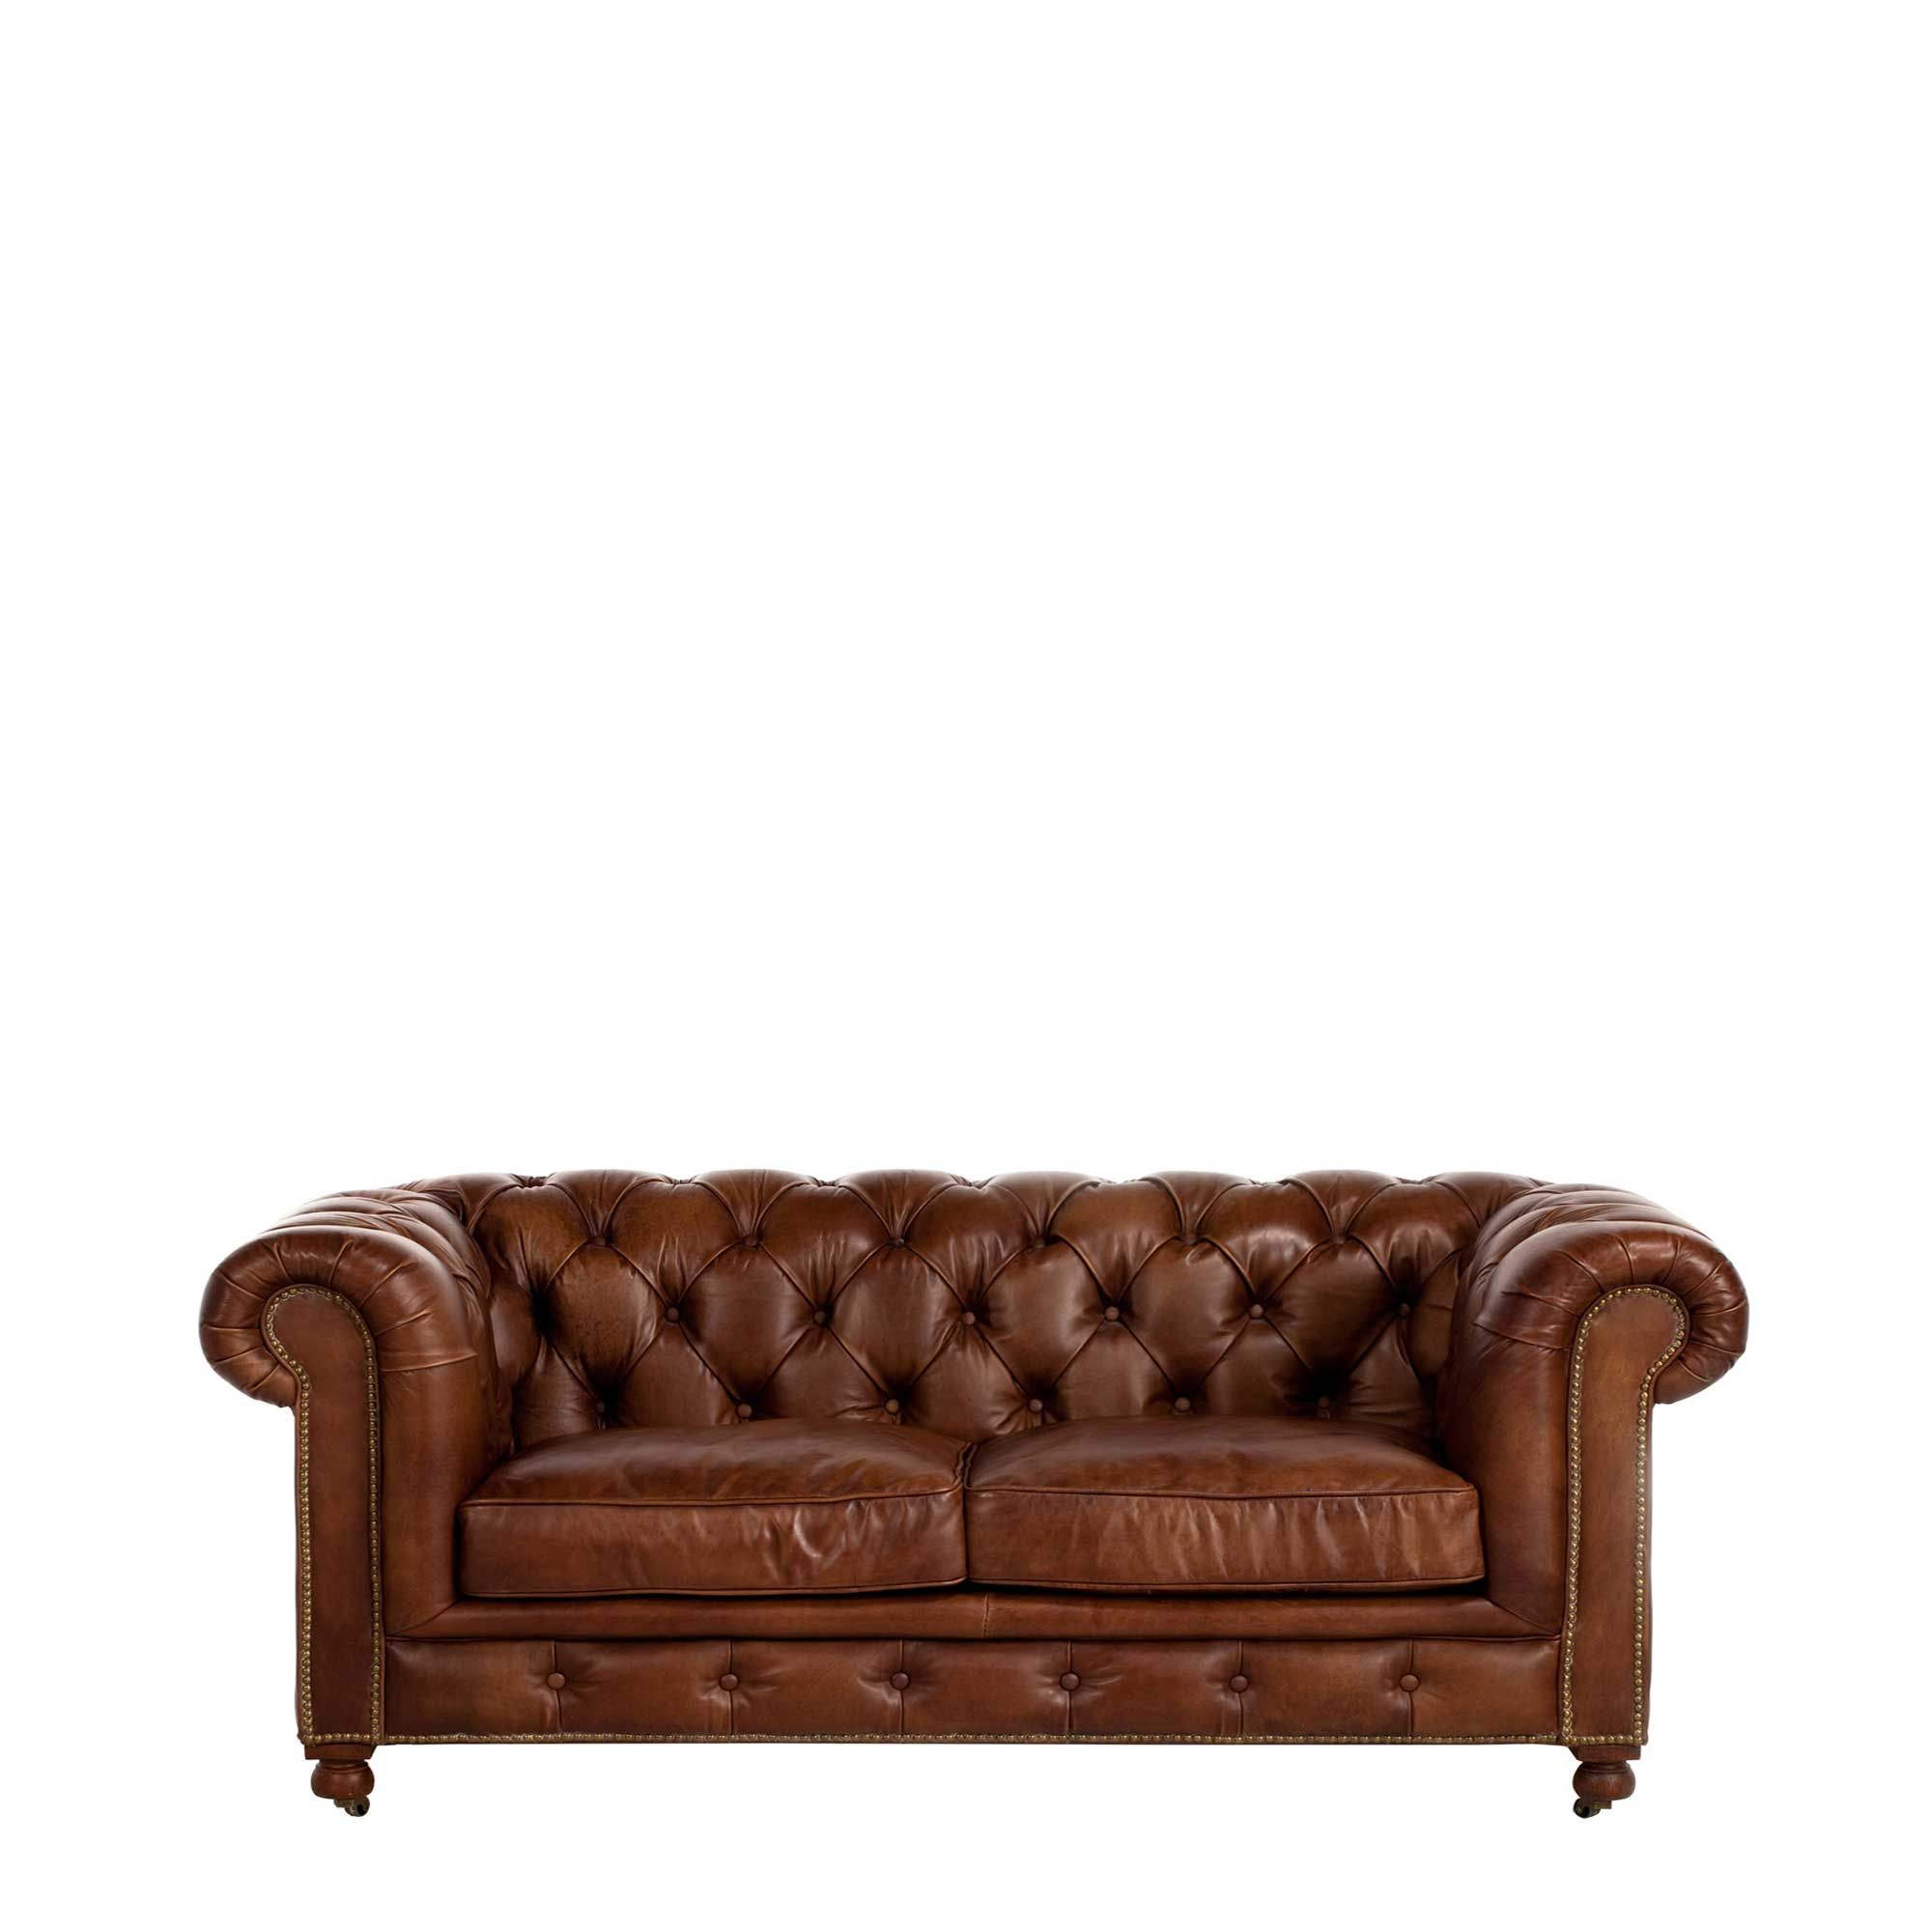 barker and stonehouse sofa protection sure fit velvet pet throw asquith leather 2 5 seater chesterfield sofas